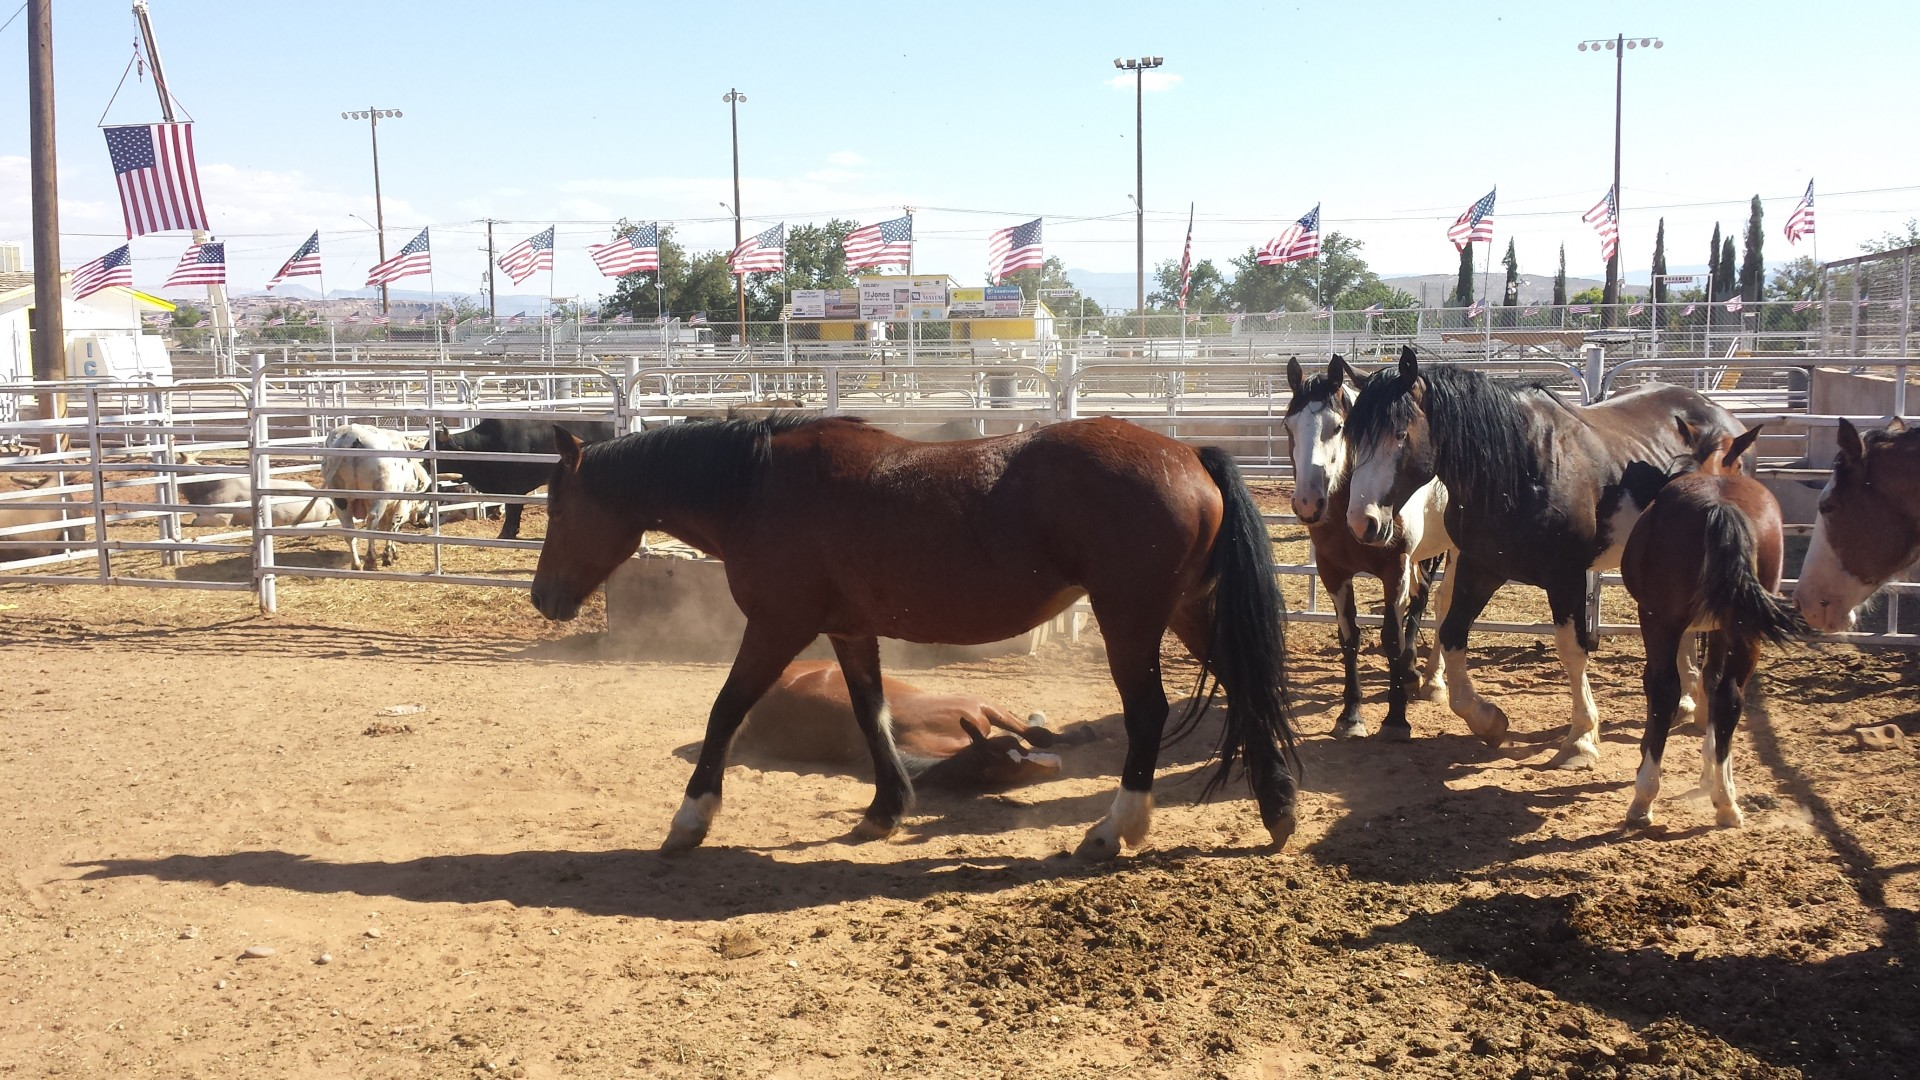 Picture of a bucking horse, Dixie Rodeo at the Sunbowl. St. George, Utah. Sept 13, 2014 | Photo by T.S Romney St. George News